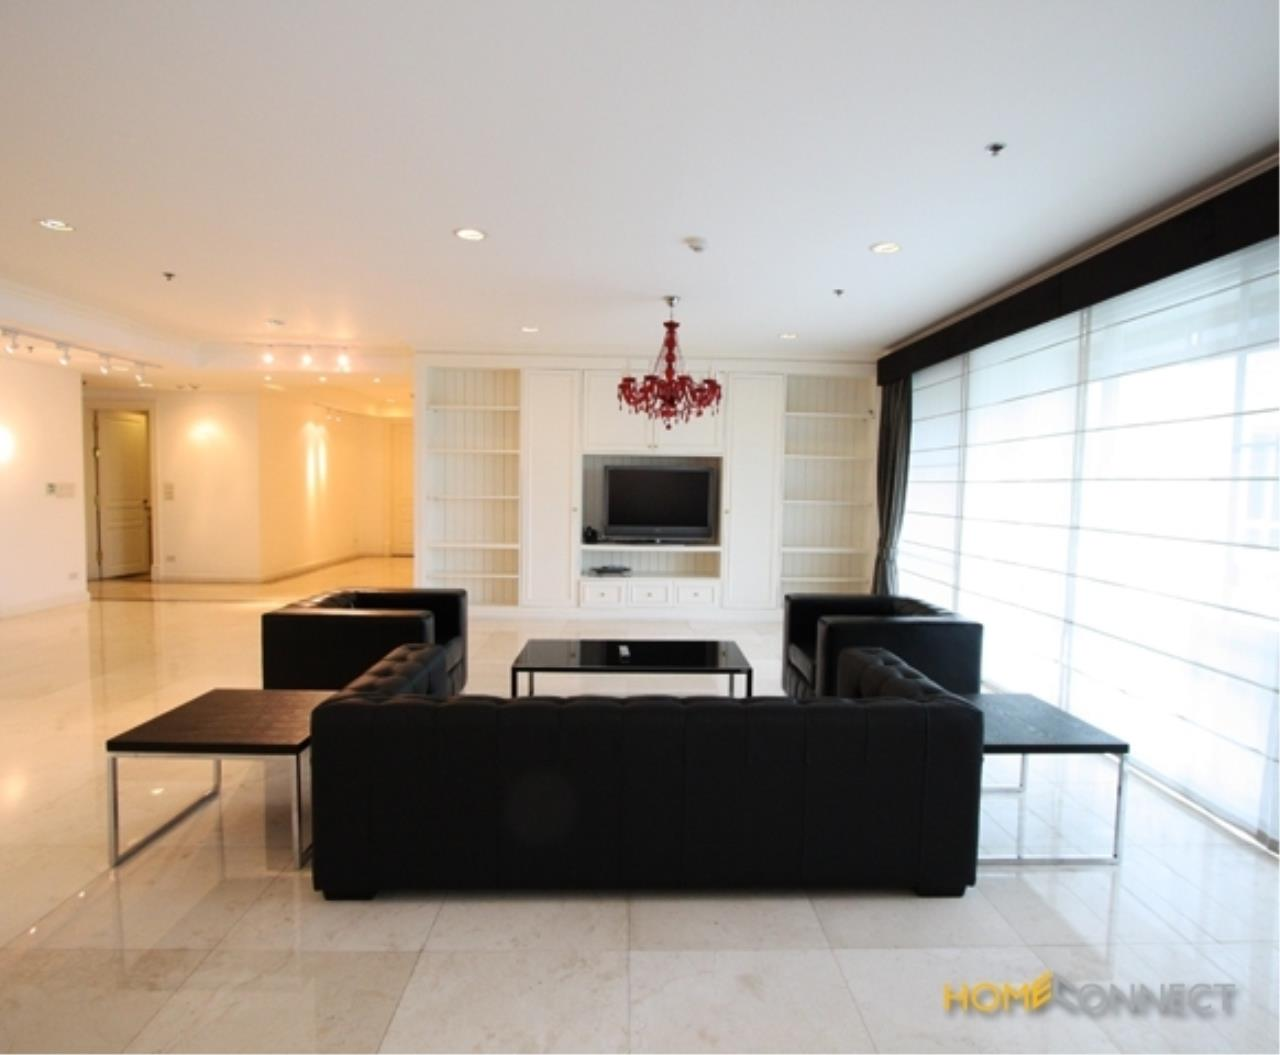 Home Connect Thailand Agency's Apartment in Sathorn for Rent 12